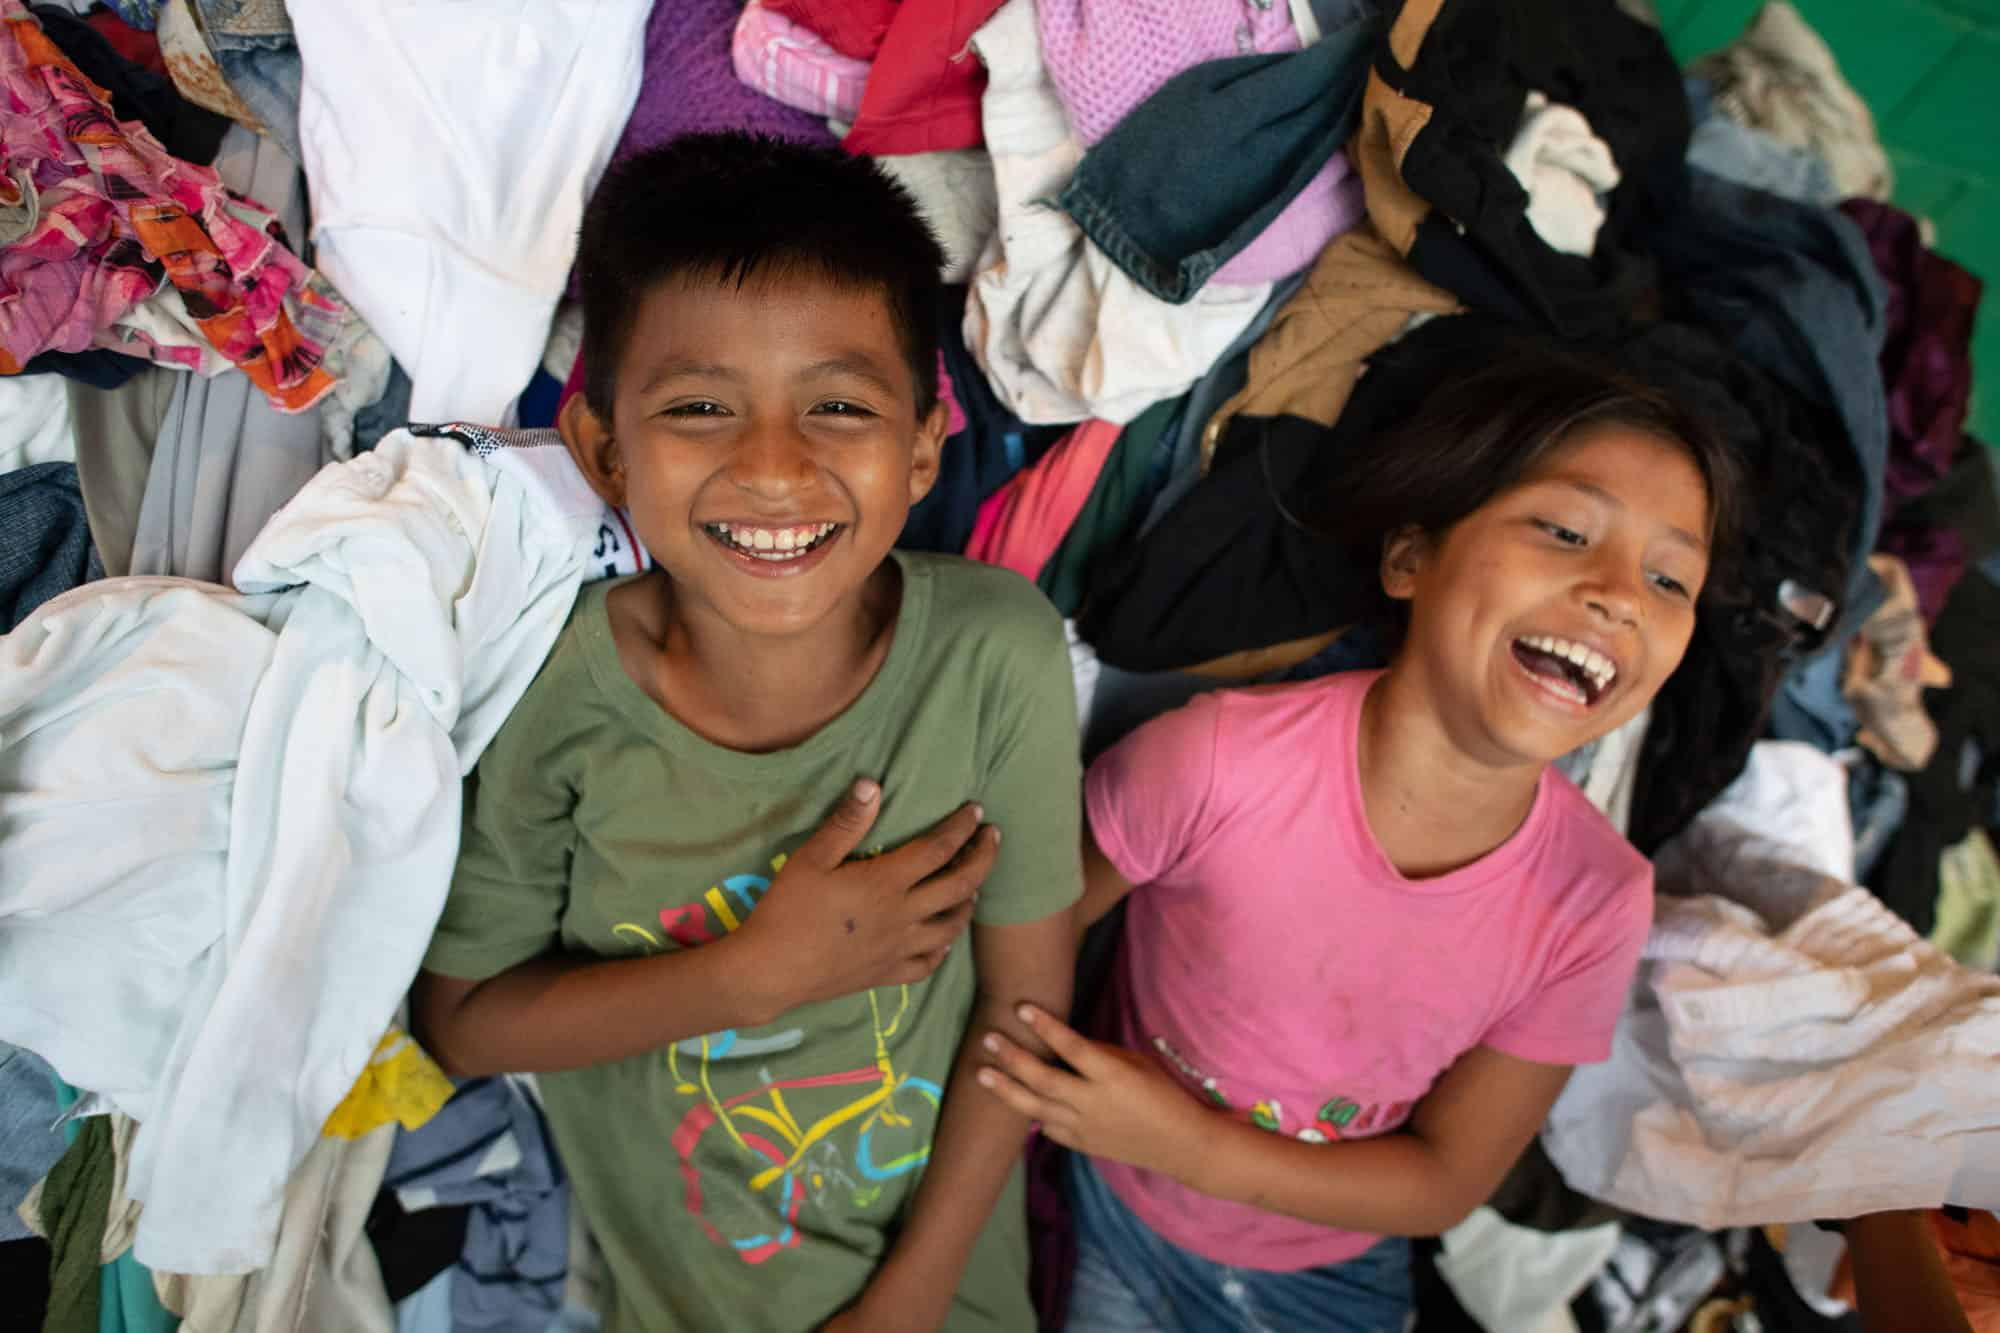 Even in a shelter stuff with belongings and supplies, there's still room for laughter after the volcano.